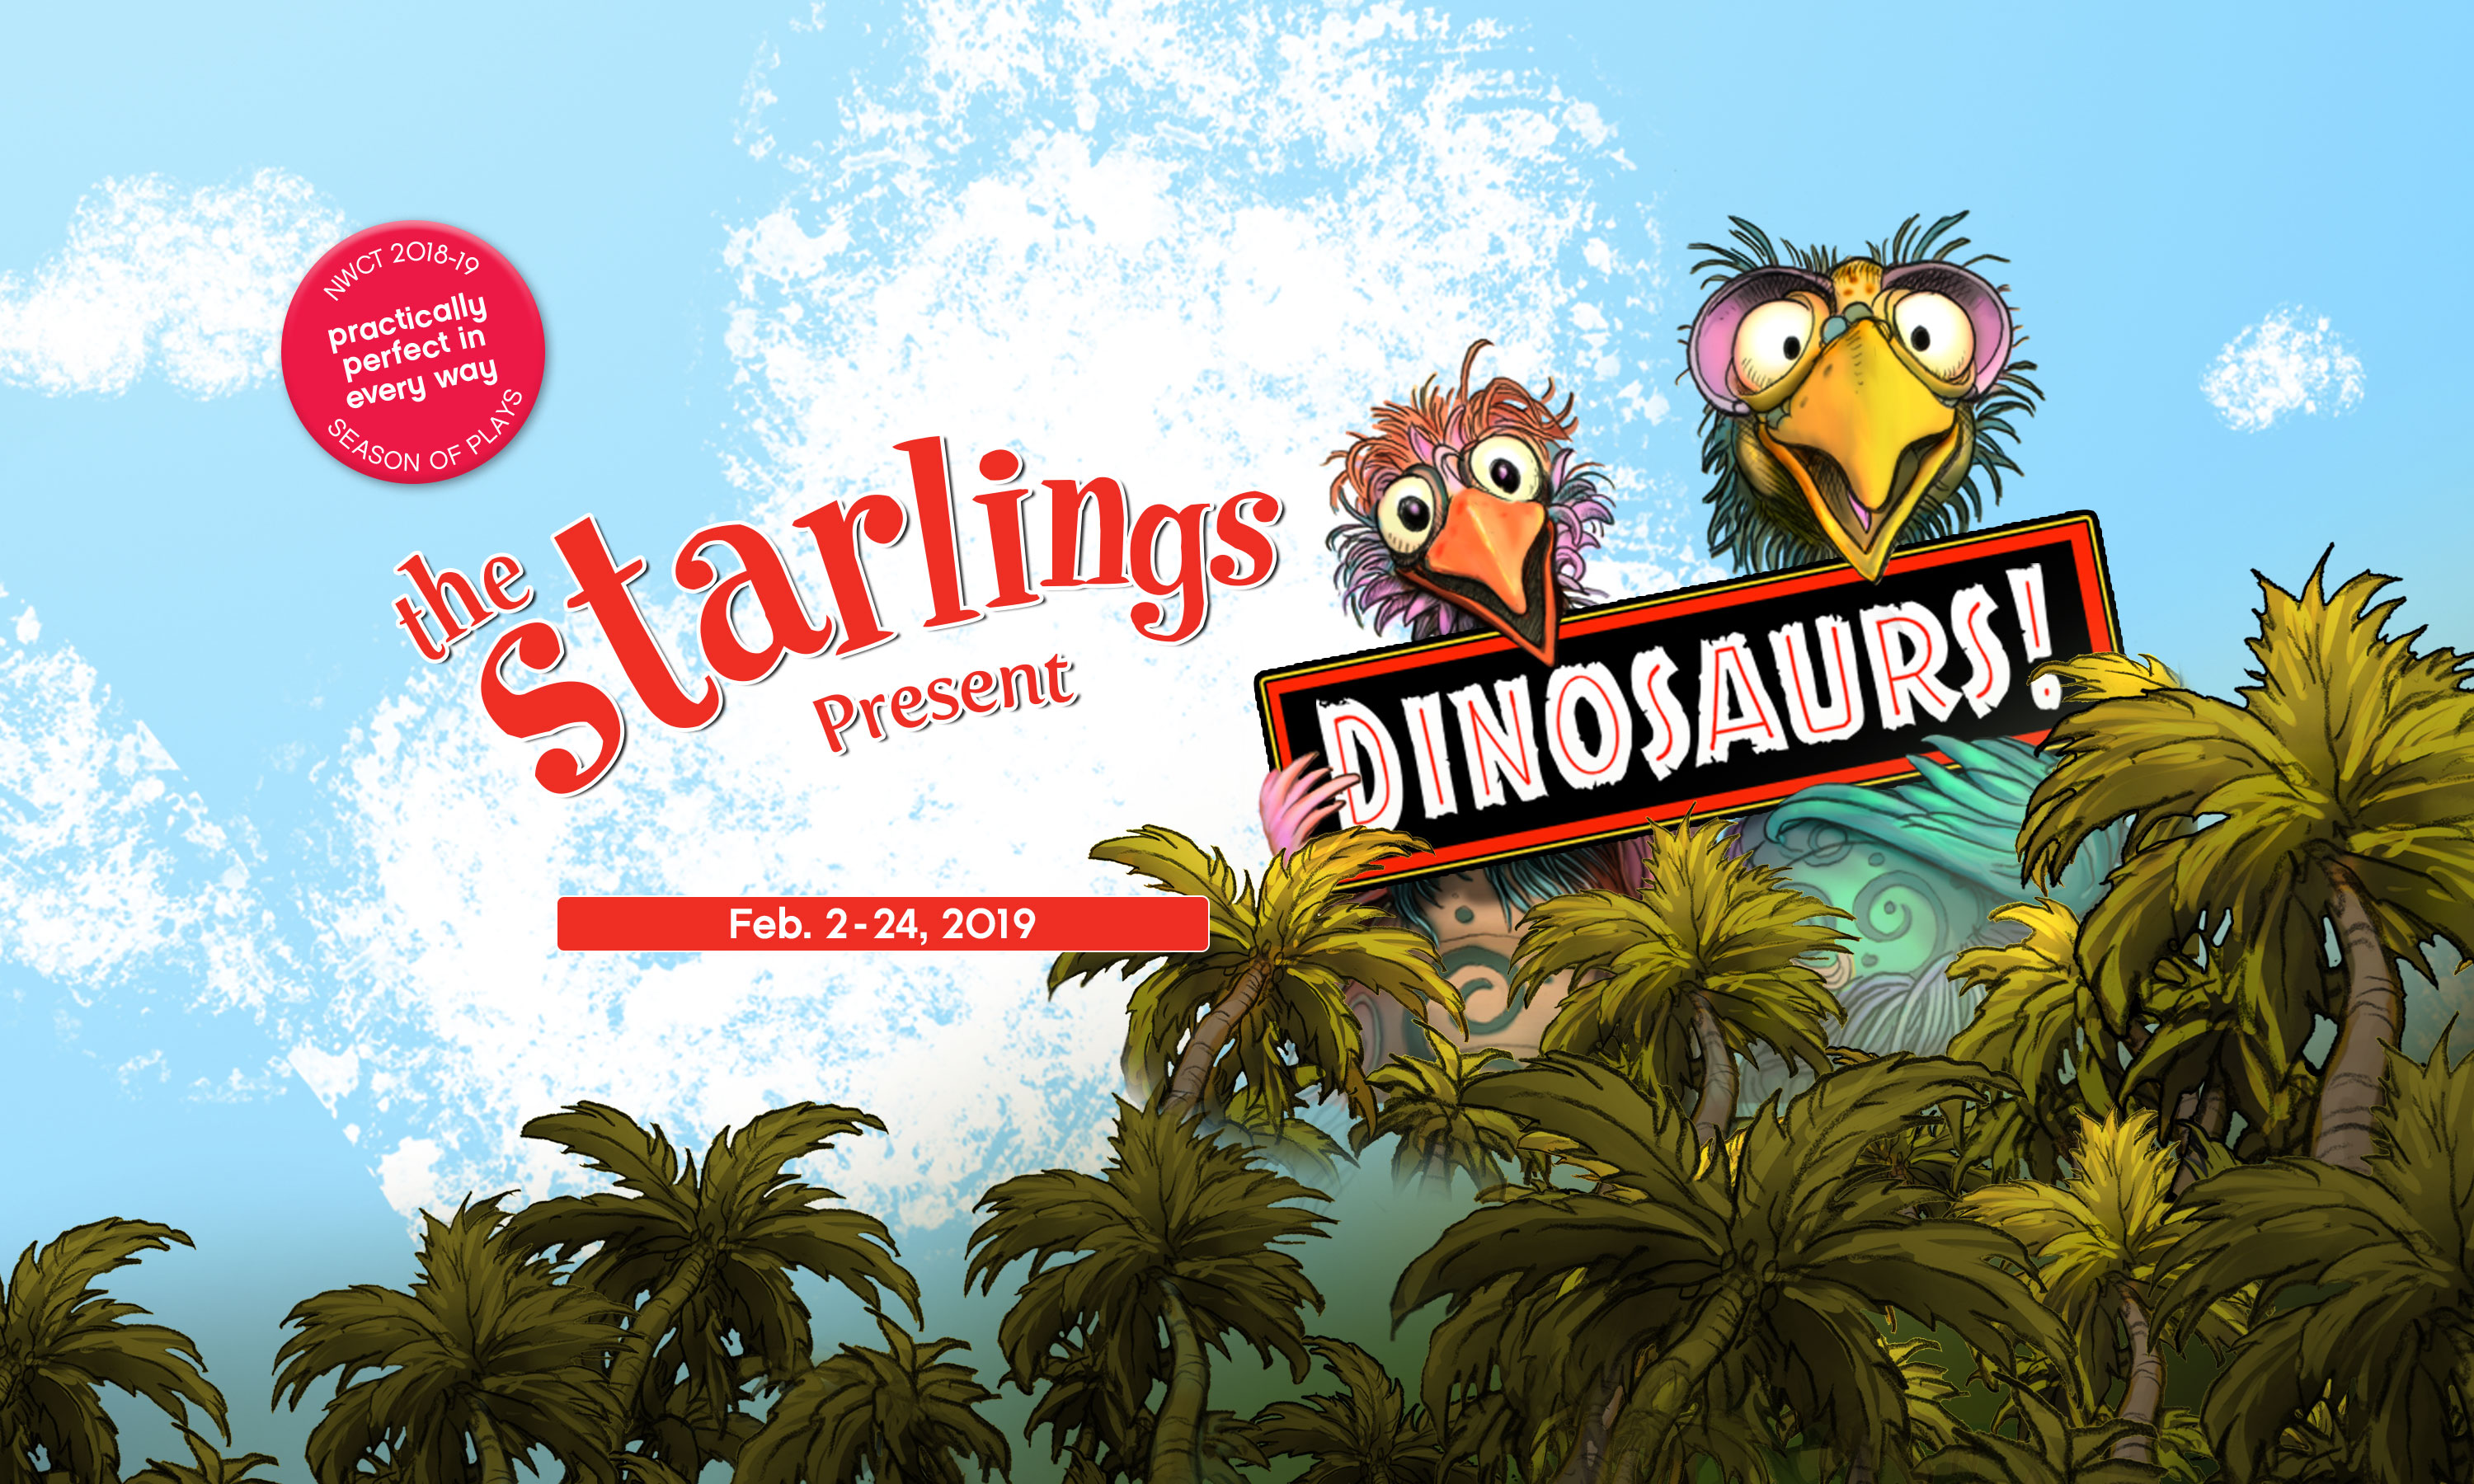 The Starlings Present: Dinosaurs!